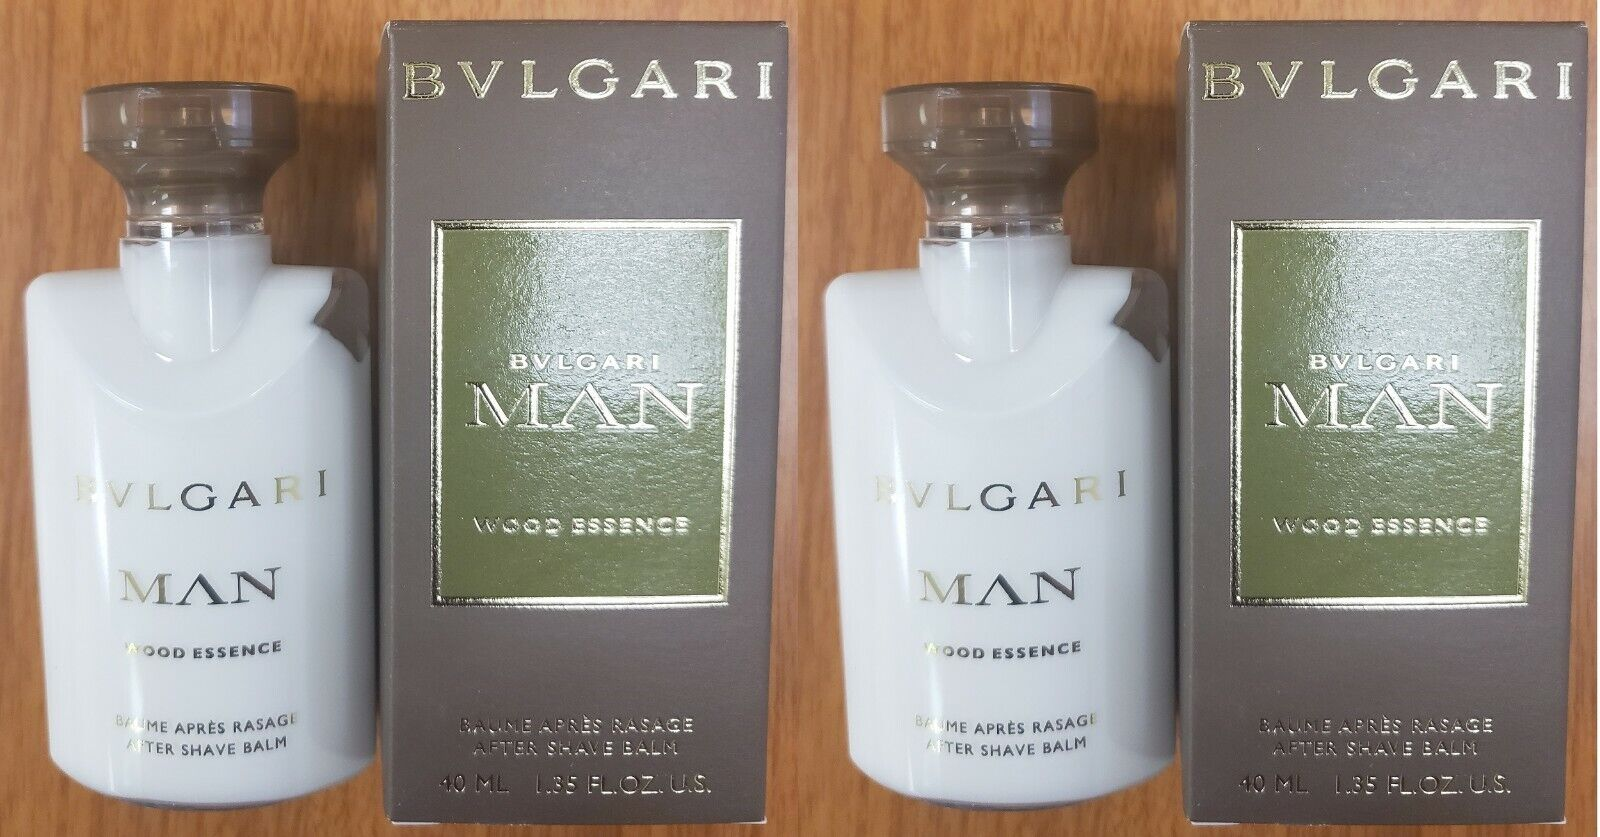 Bvlgari Man Wood Essence After Shave Balm Pack of 2 x  1.35